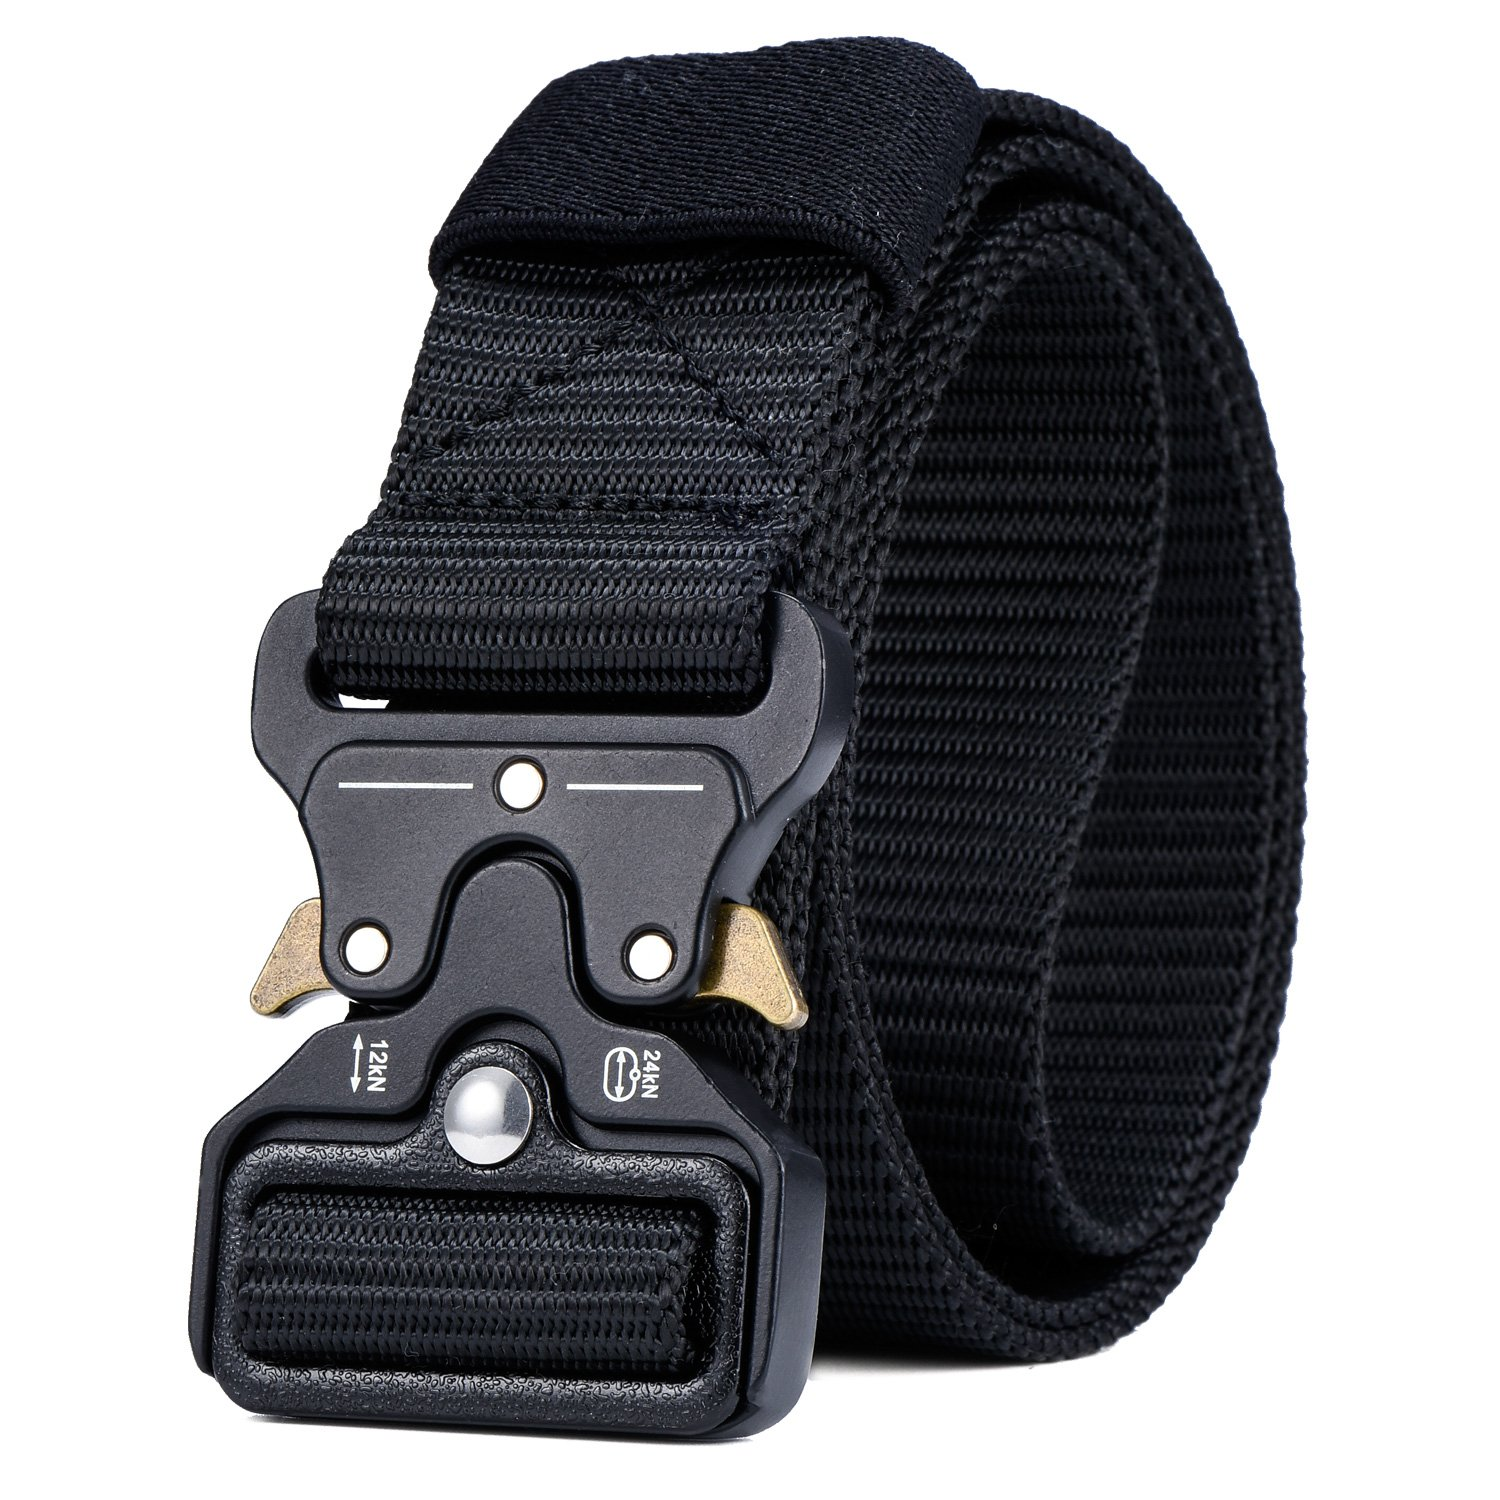 Military Tactical Belt,Quick Release Buckle, Long 43''-55'' Wide1.5'',Heavy Duty Waist Belt (Black, 43 inch)